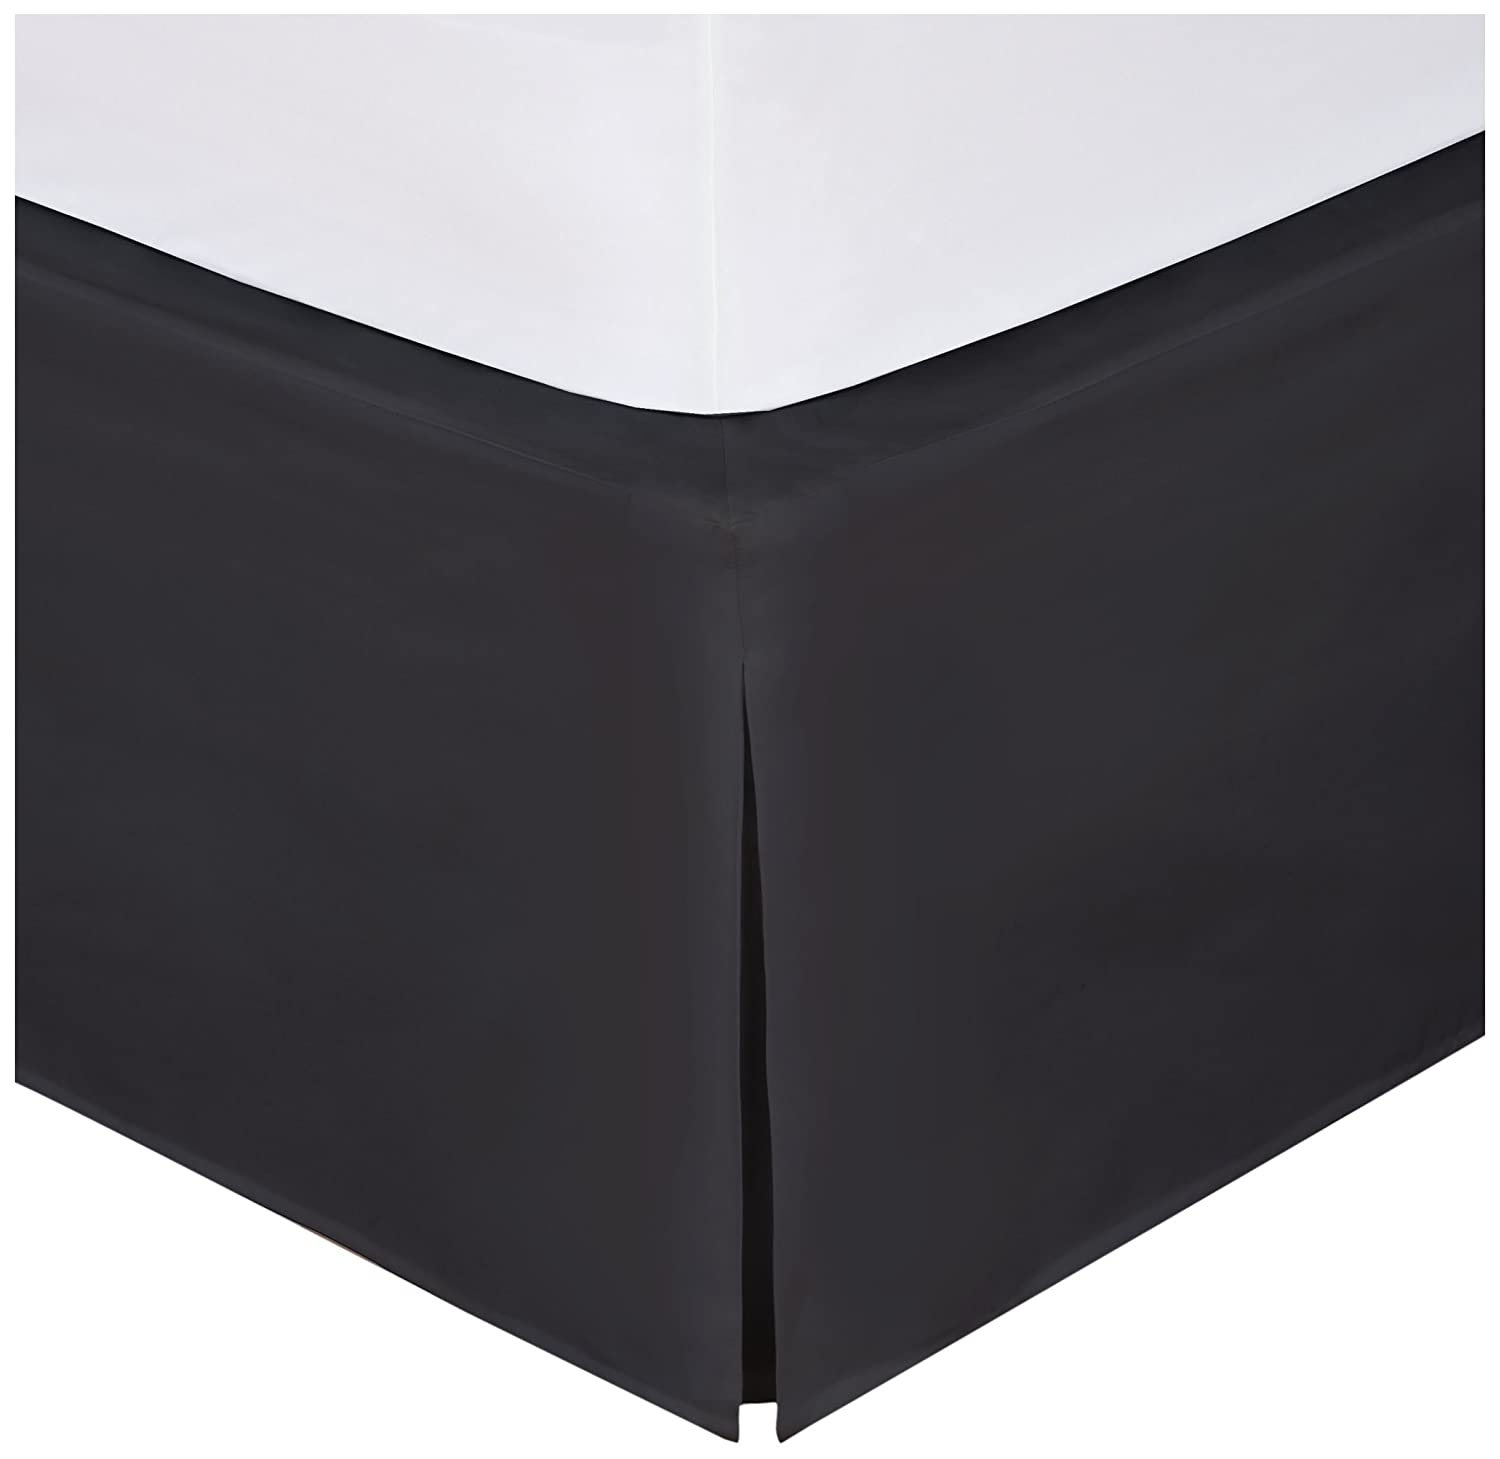 "Levinsohn Magic Skirt Tailored Bedskirt, Never Lift Your Mattress, Classic 14"" drop length, Pleated Styling, Twin, Black FRE24514BLAC01"